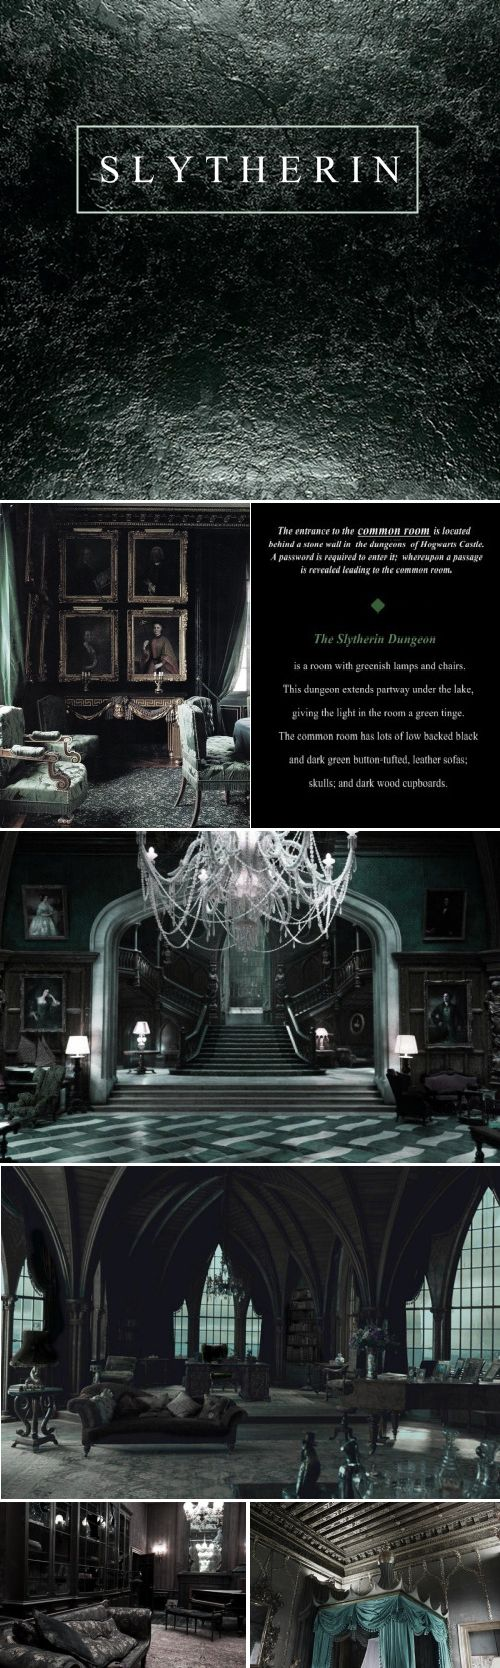 Slytherin Dungeon #hp